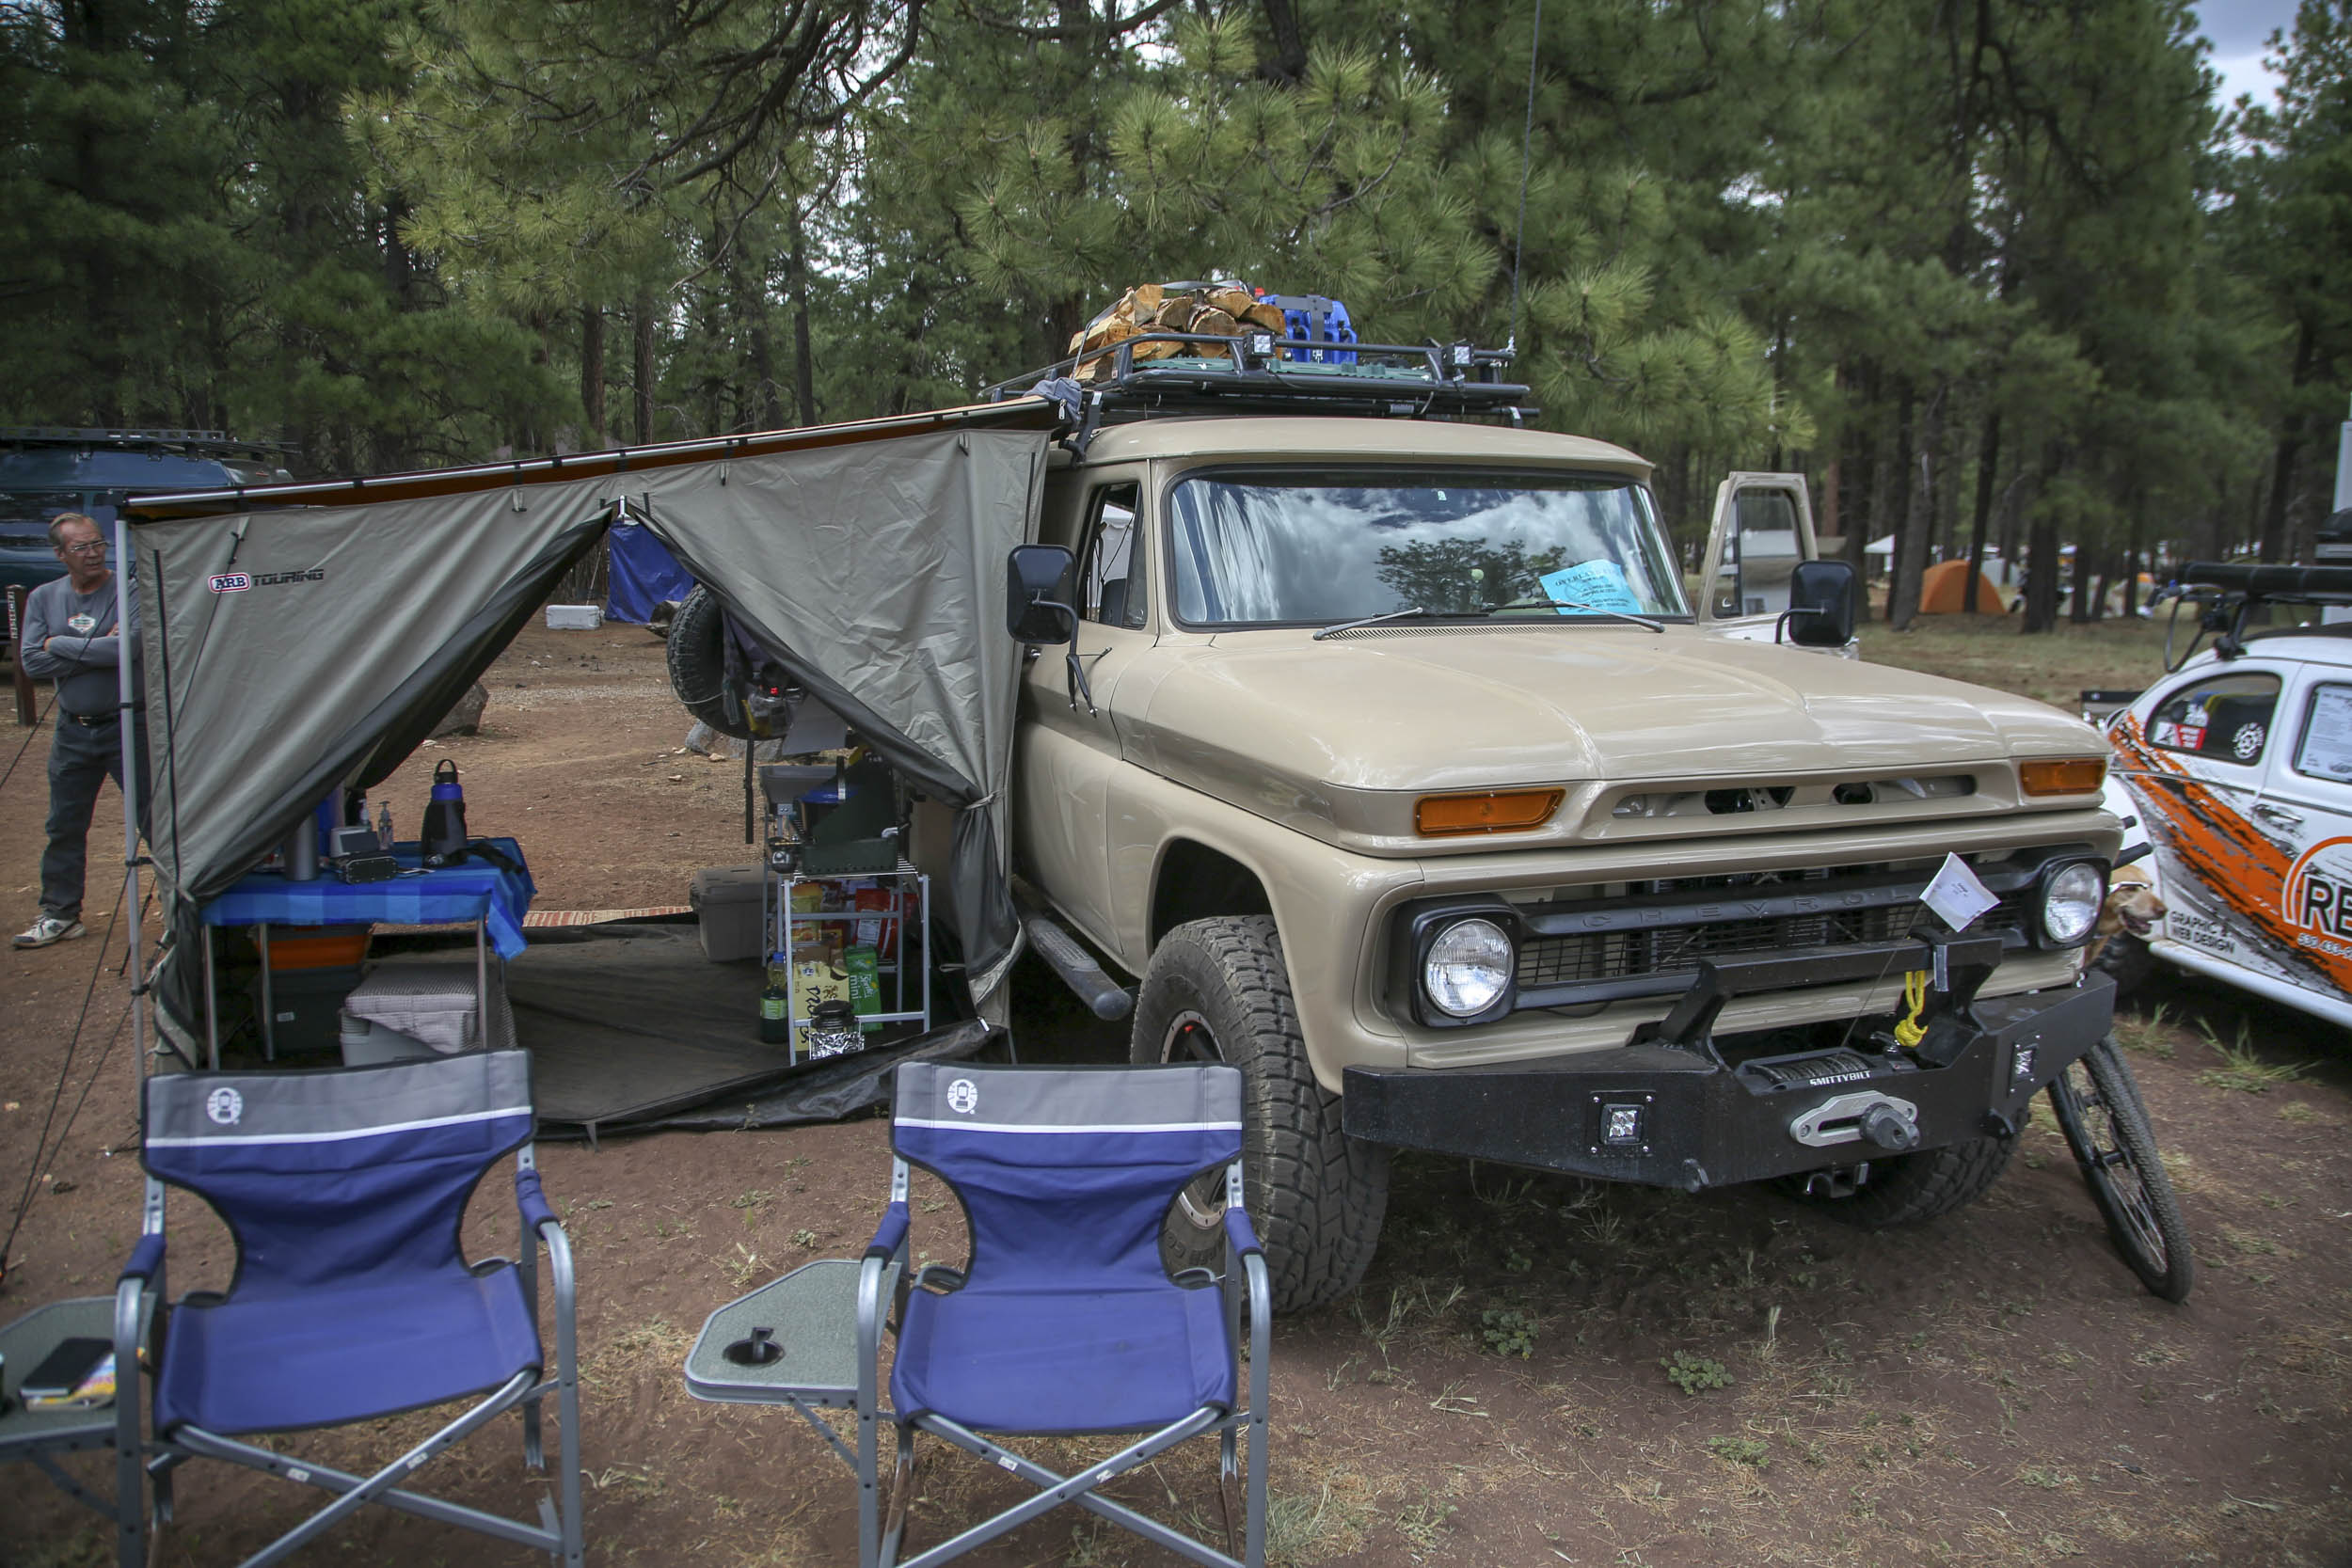 1966 Chevrolet Panel Truck camping setup